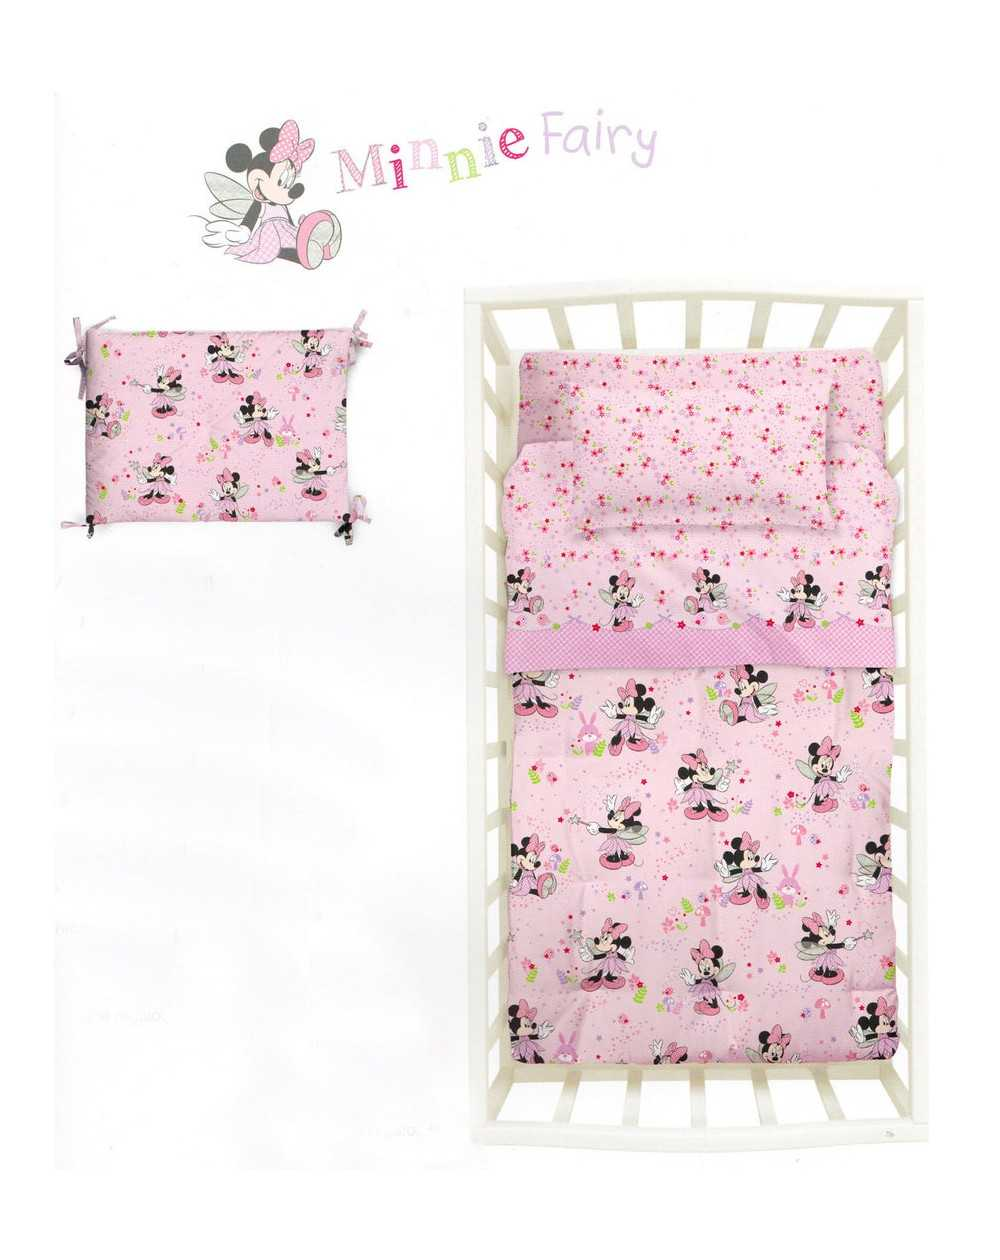 tour de lit edredon minnie fairy baby disney. Black Bedroom Furniture Sets. Home Design Ideas